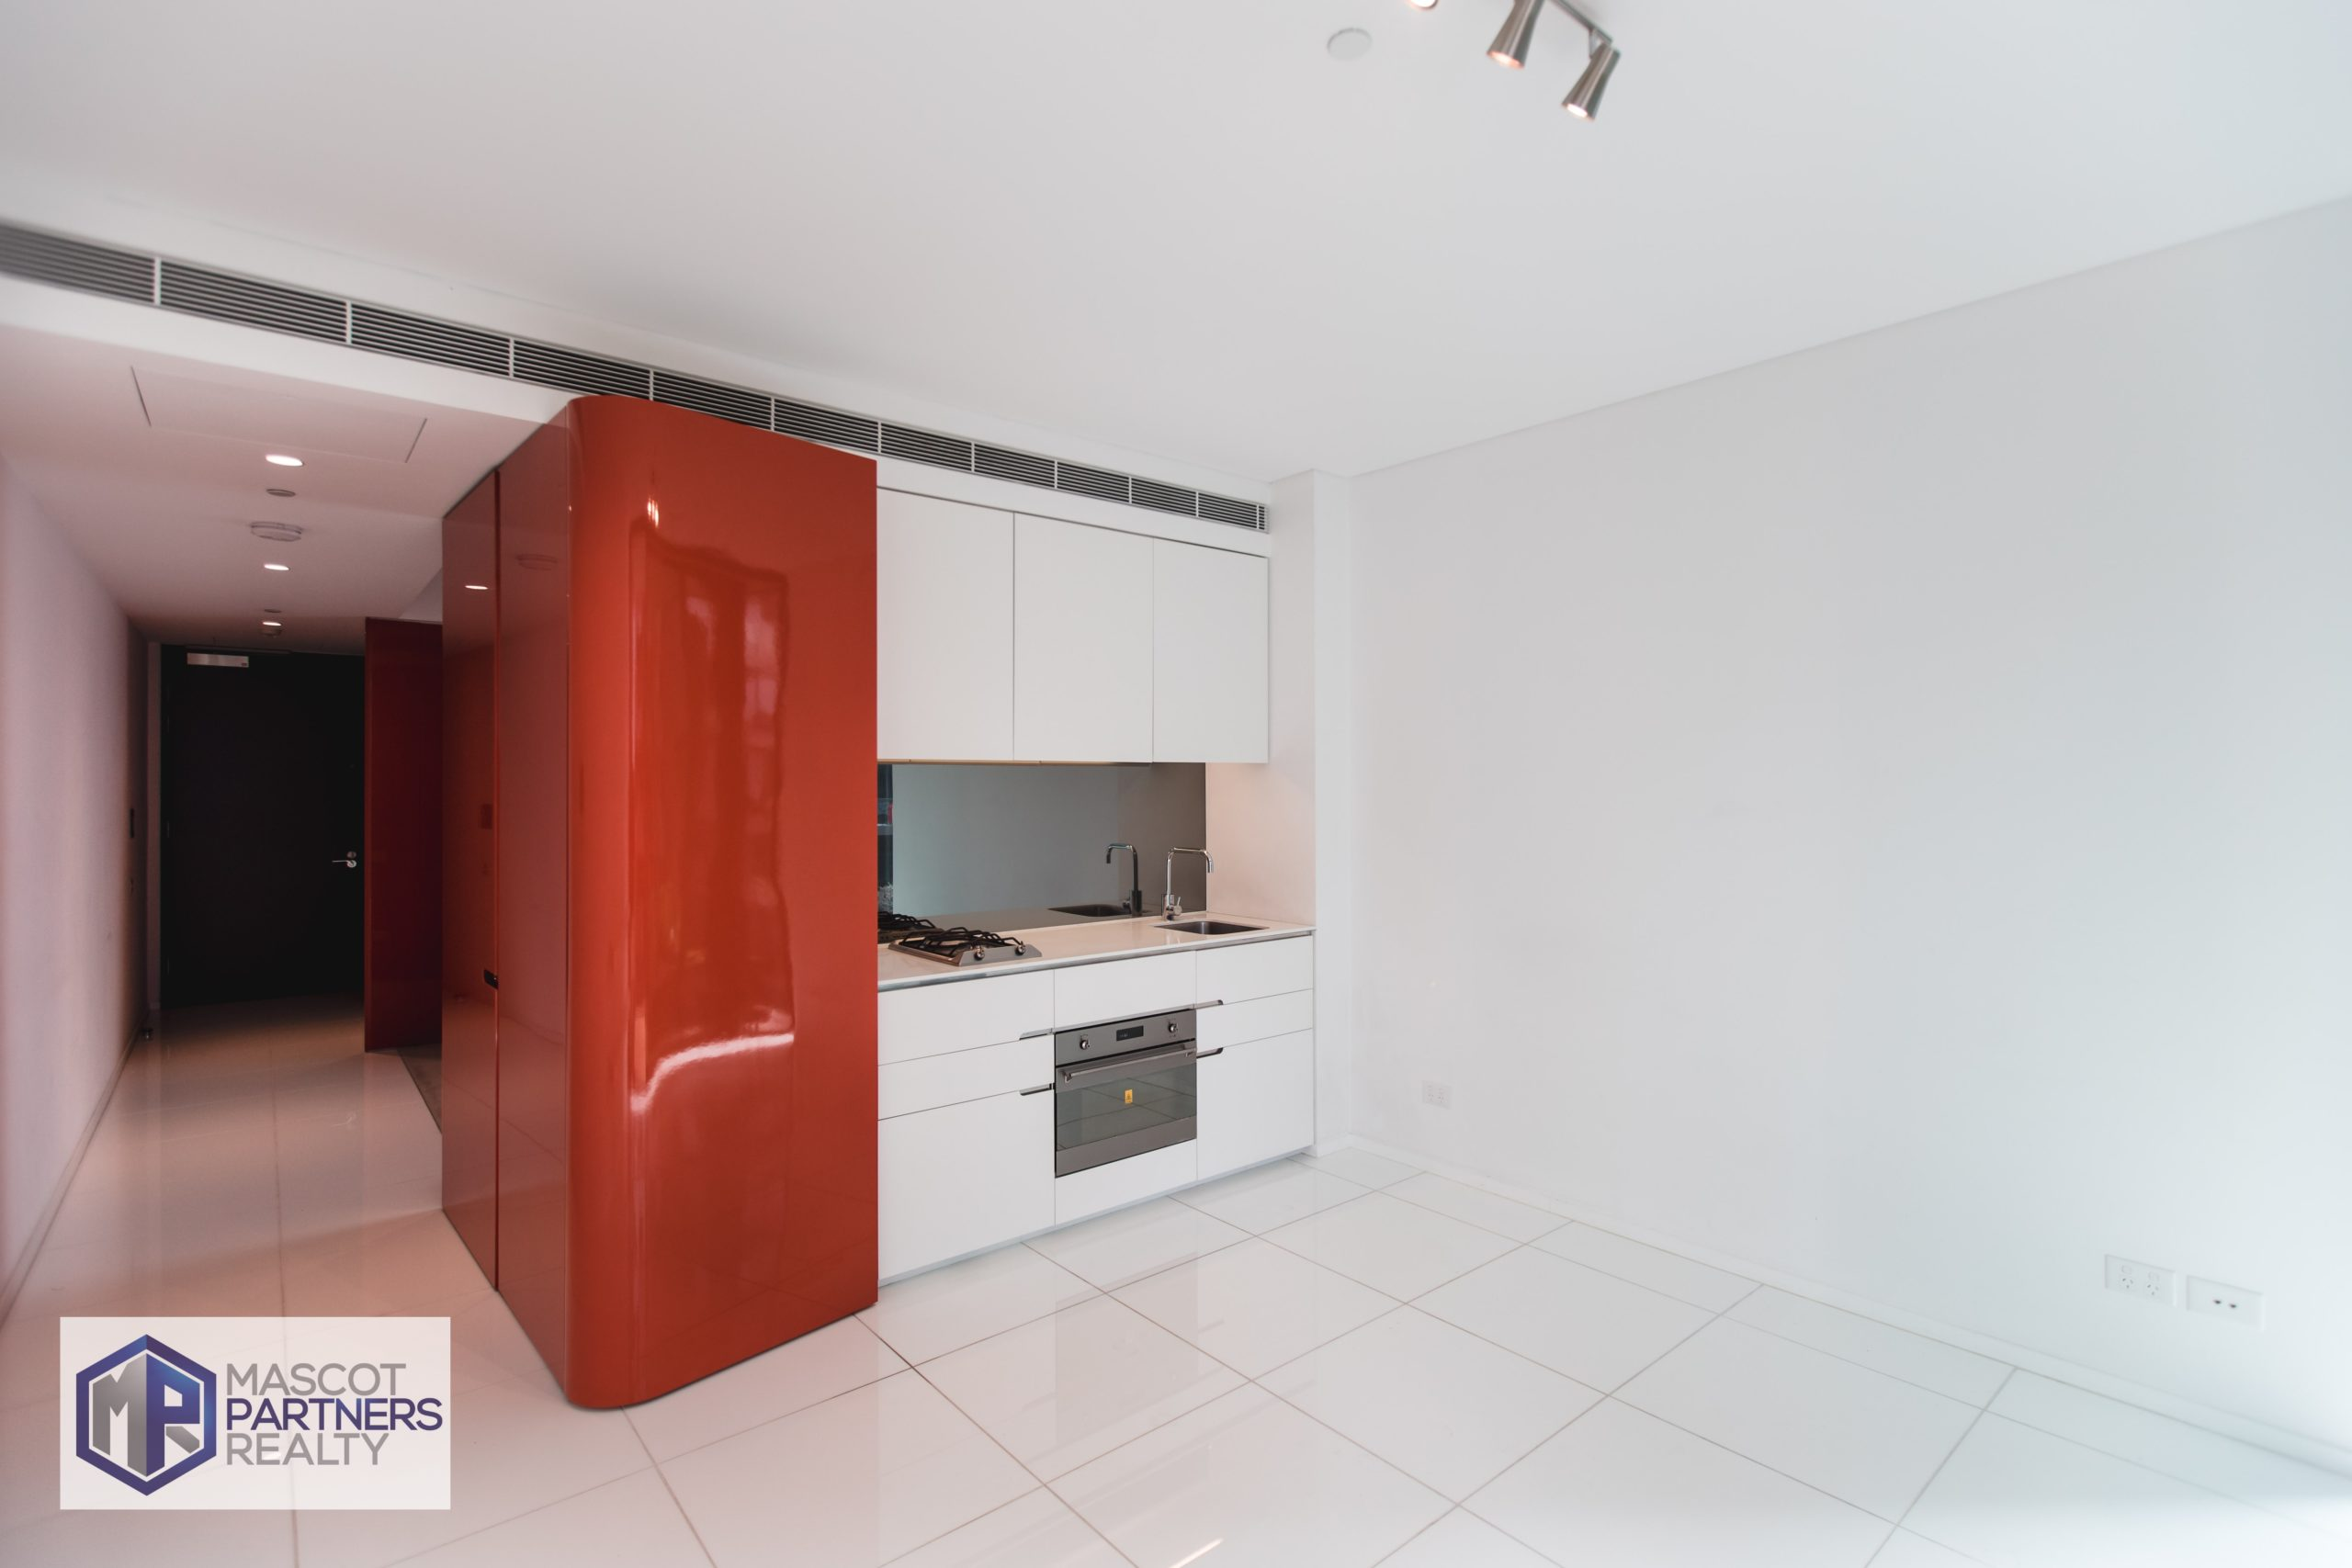 W1402/2 Chippendale Way, Chippendale NSW 2008 (LEASED)